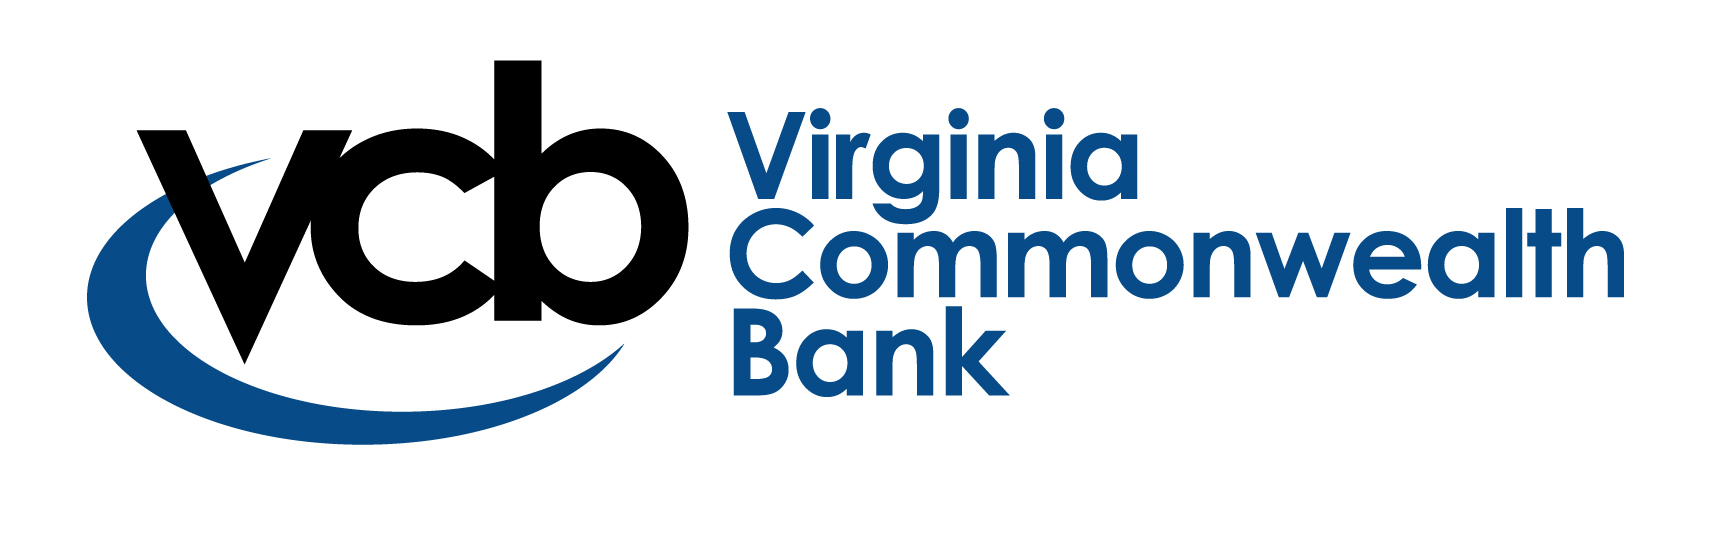 Virginia Commonwealth Bank - sponsor of the Diamond Dash